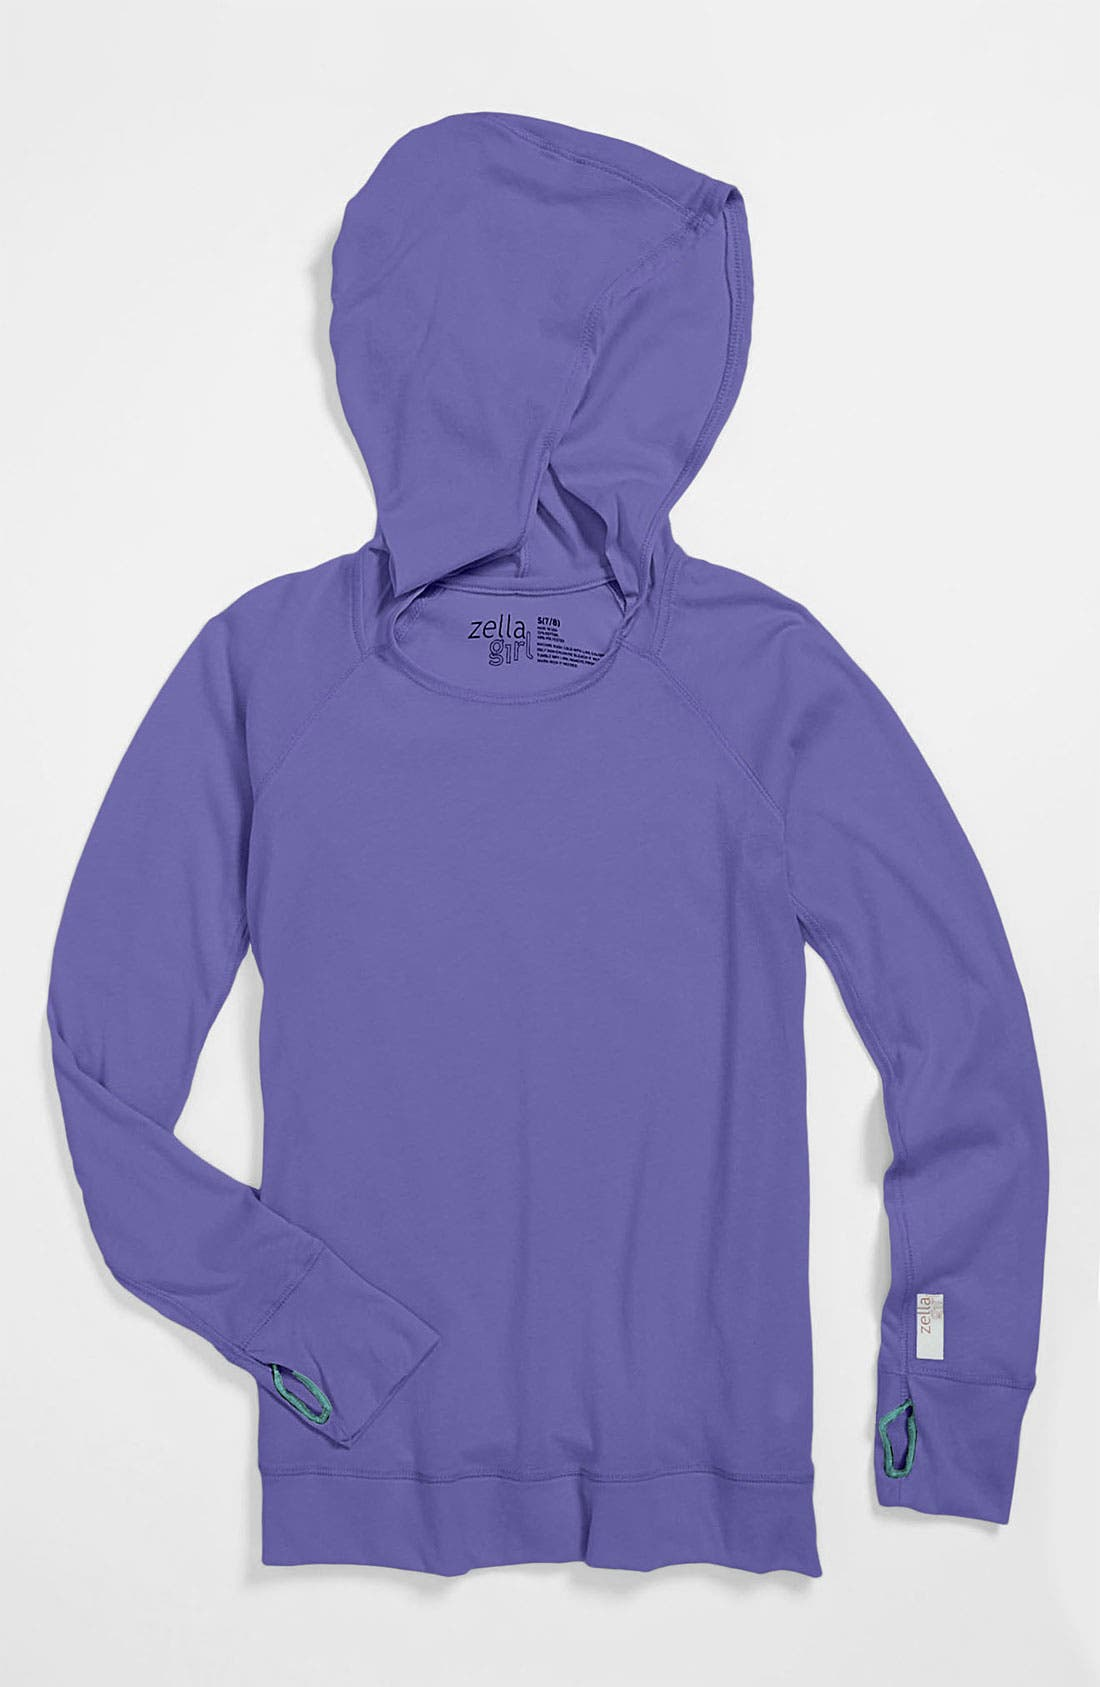 Main Image - Zella Girl 'Sporty' Hooded Tunic Tee (Little Girls & Big Girls)